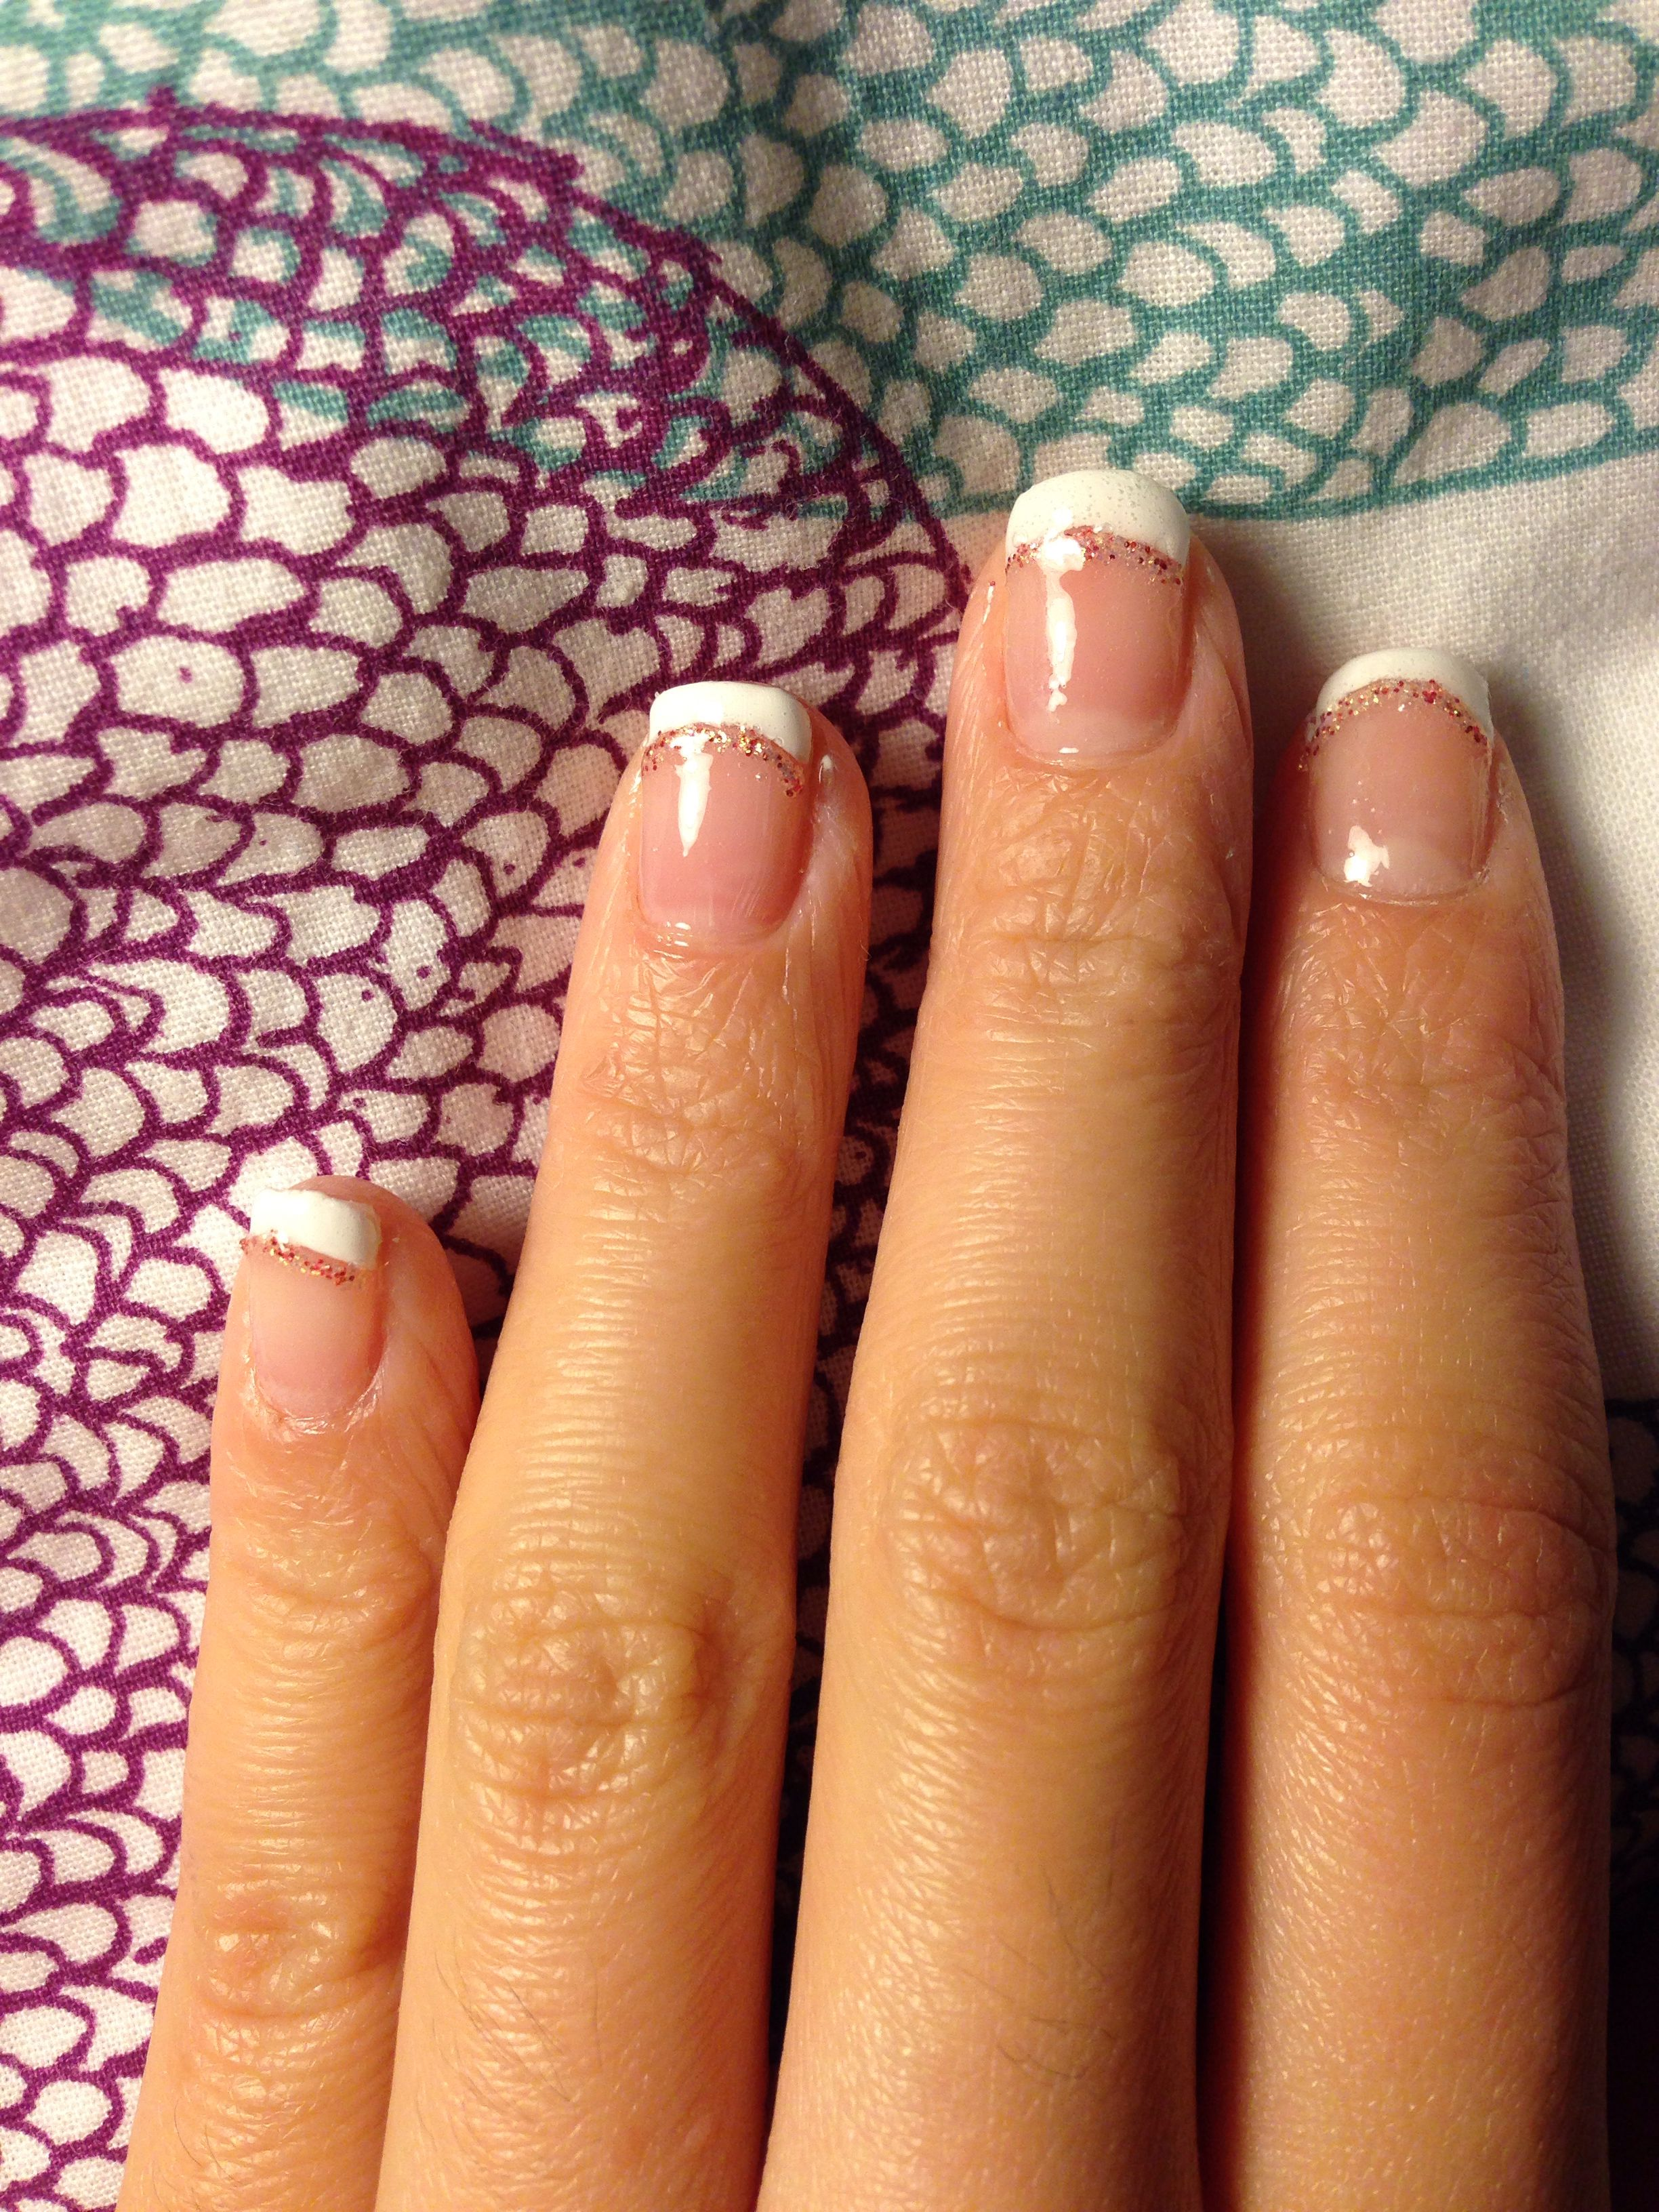 French Nails With Glitter Lines Nail Art For Short Nails Self